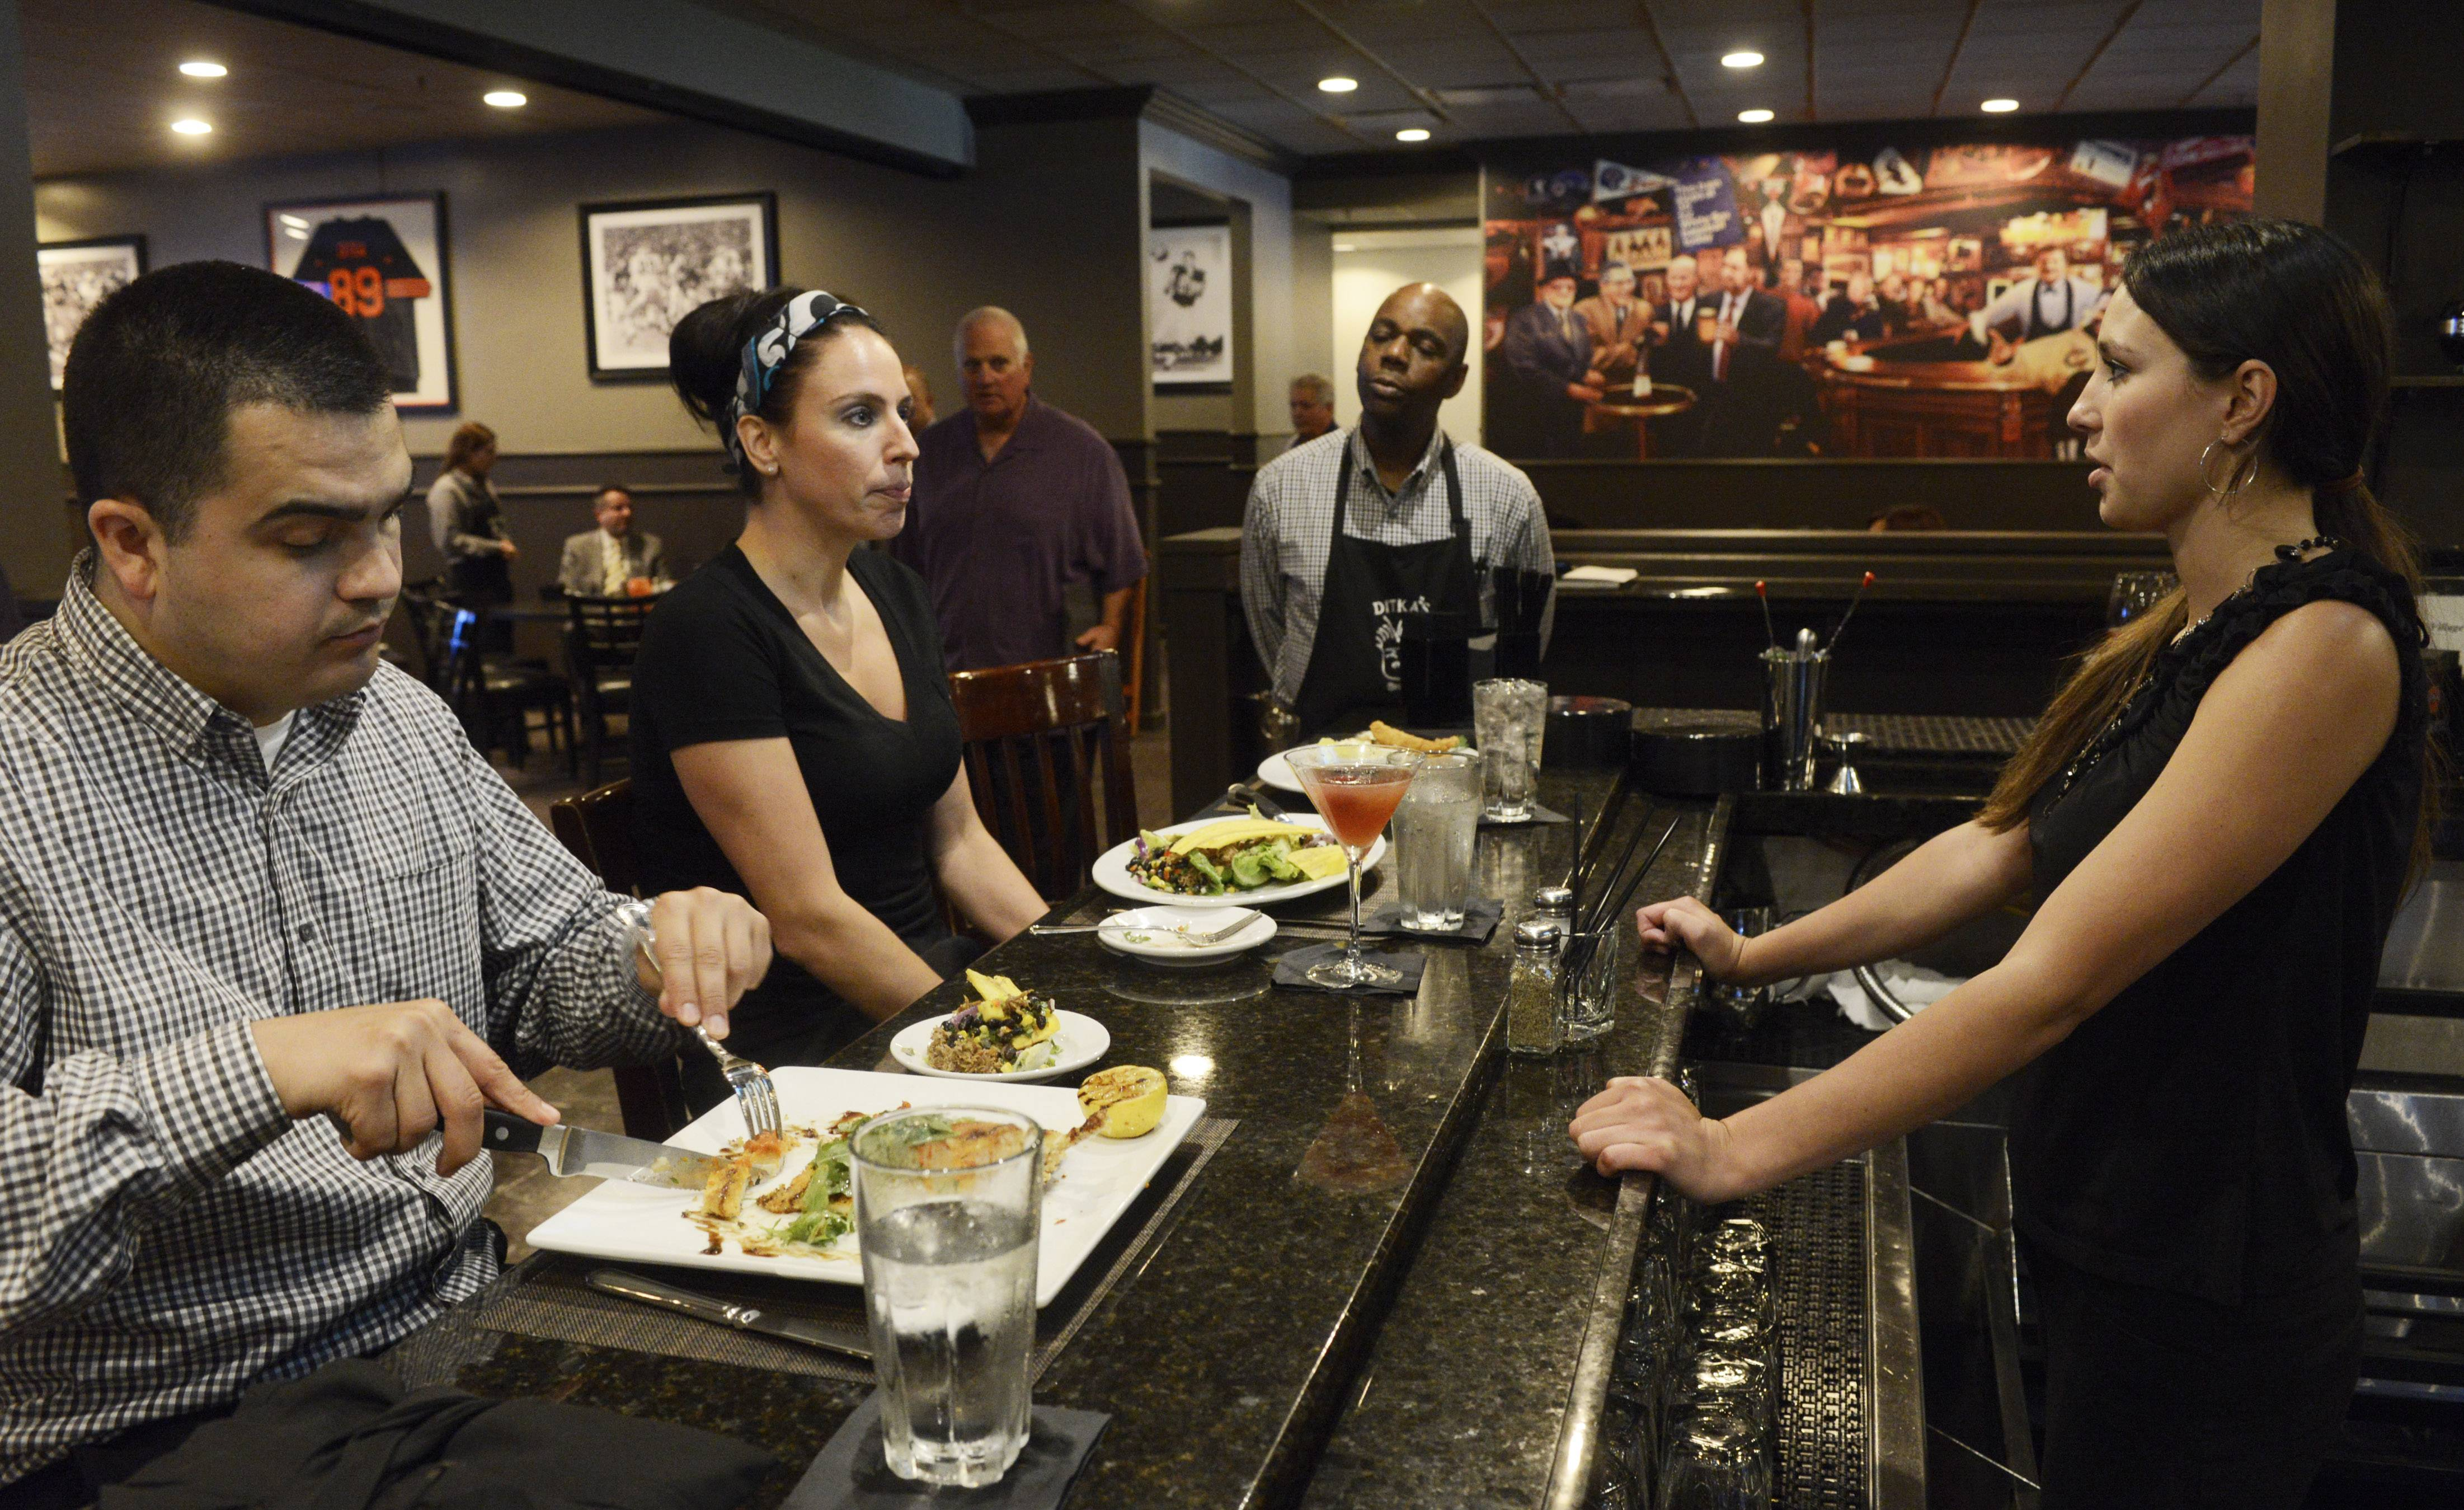 Bartender Haely Jorgensen, right, chats with Andy Lopez and Nicole Szwed, Ditka's employees, as they sample the food.